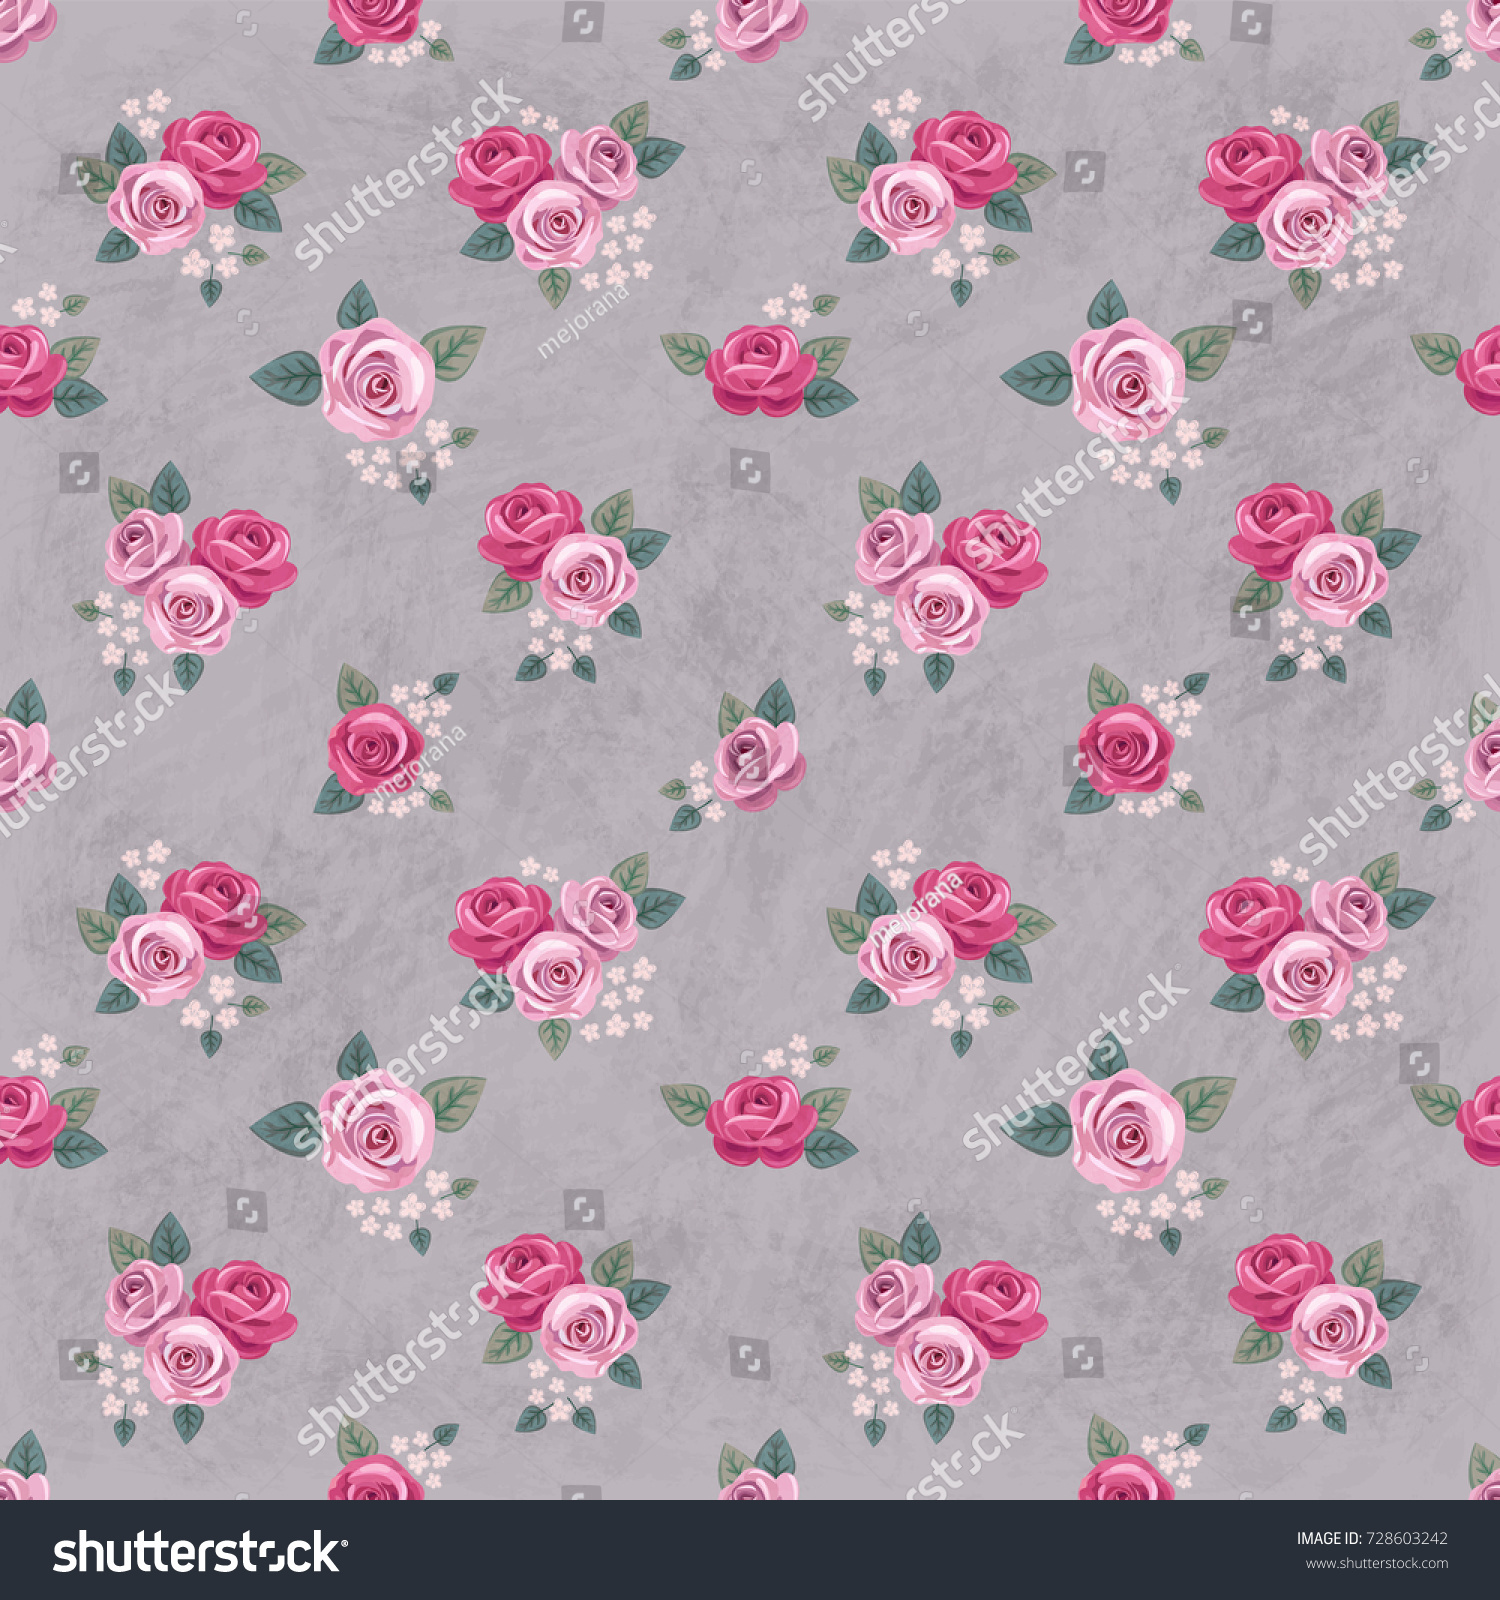 Seamless Floral Vintage Romantic Pattern With Pink Roses On Gray Shabby Background Retro Wallpaper Style Chic Design Perfect For Scrapbooking